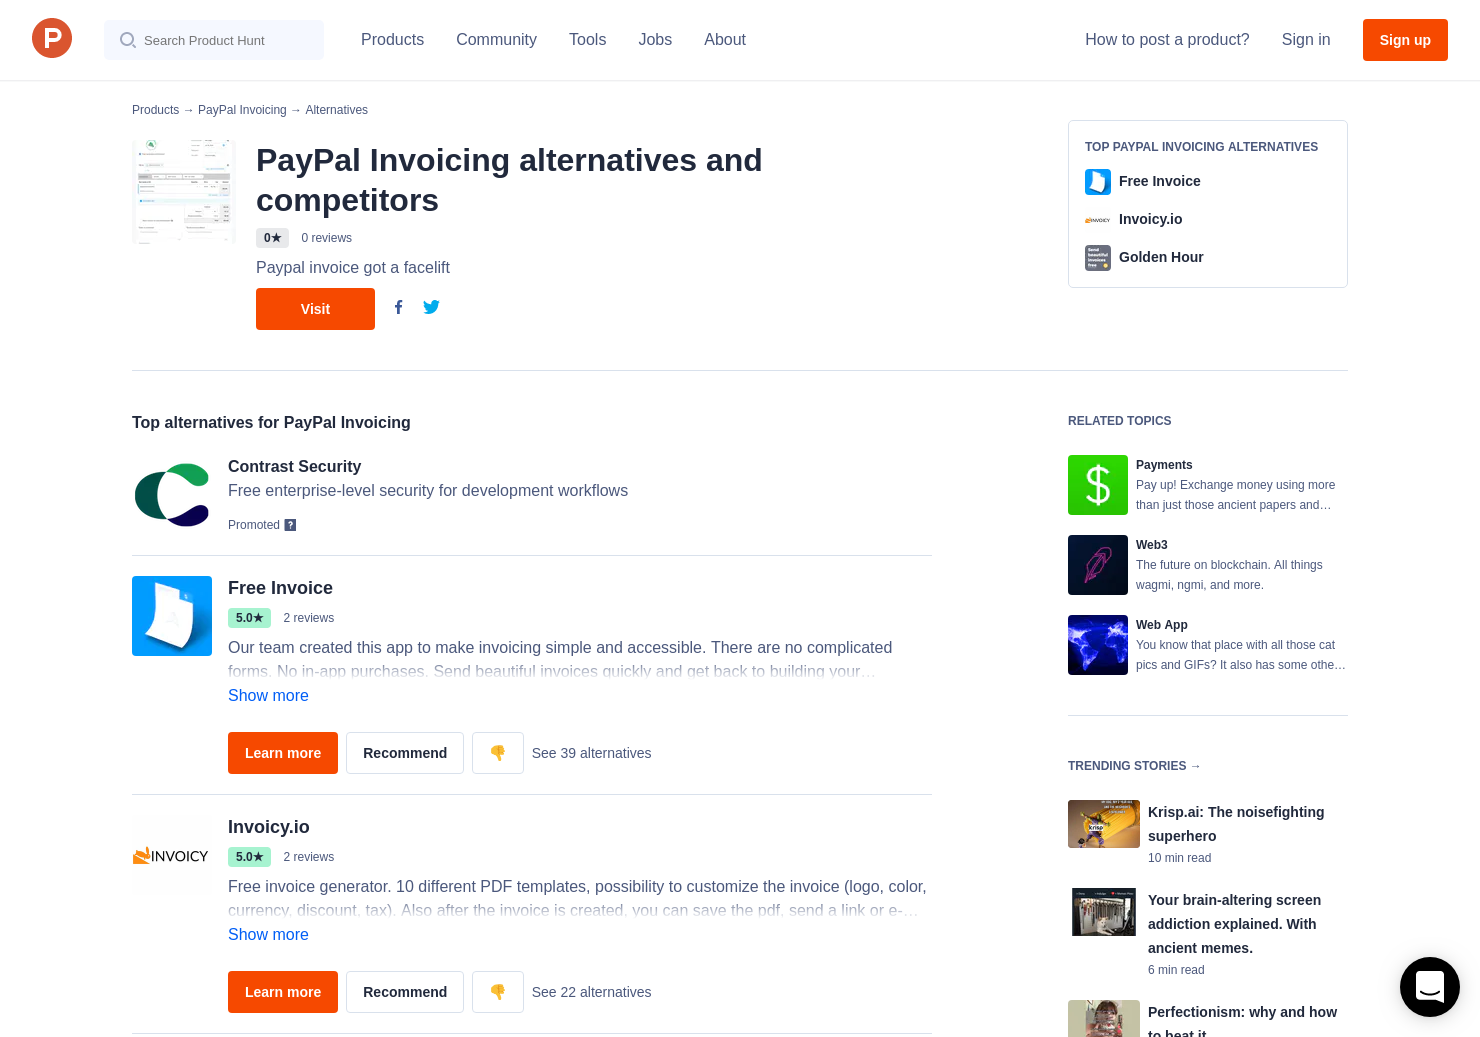 6 Alternatives to PayPal Invoicing | Product Hunt